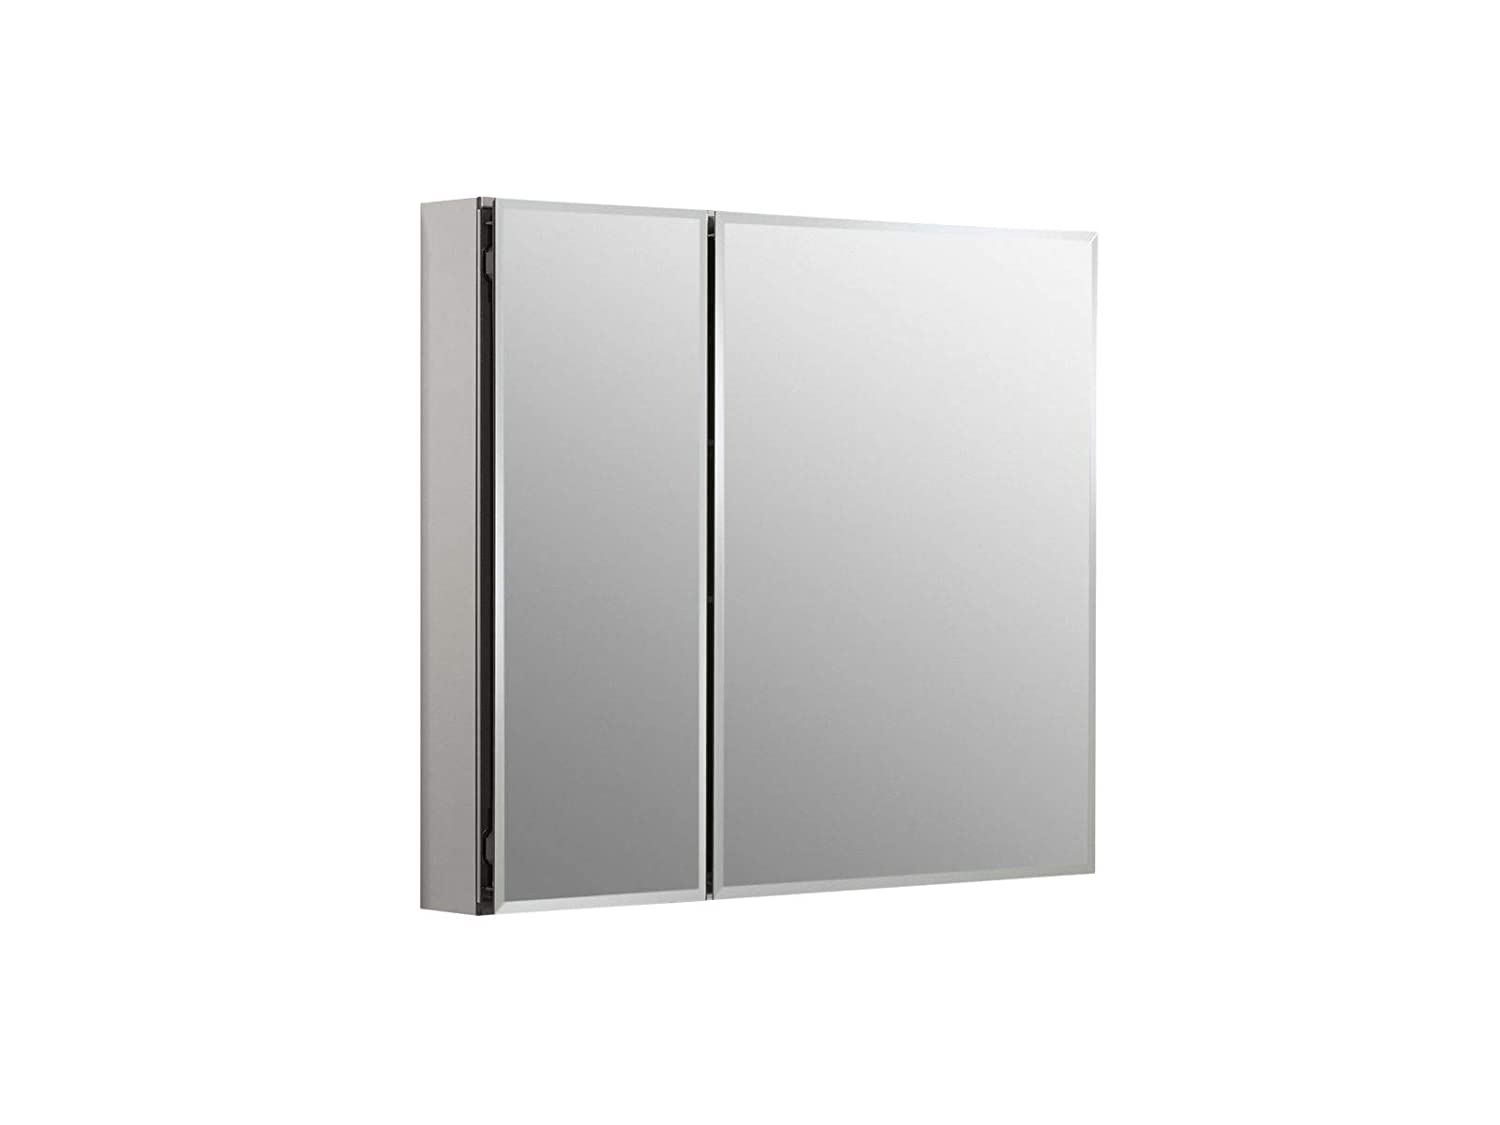 KOHLER K-CB-CLC3026FS Frameless Double Door 30 inch x 26 inch Aluminum Bathroom Medicine Cabinet Recess or Surface Mount